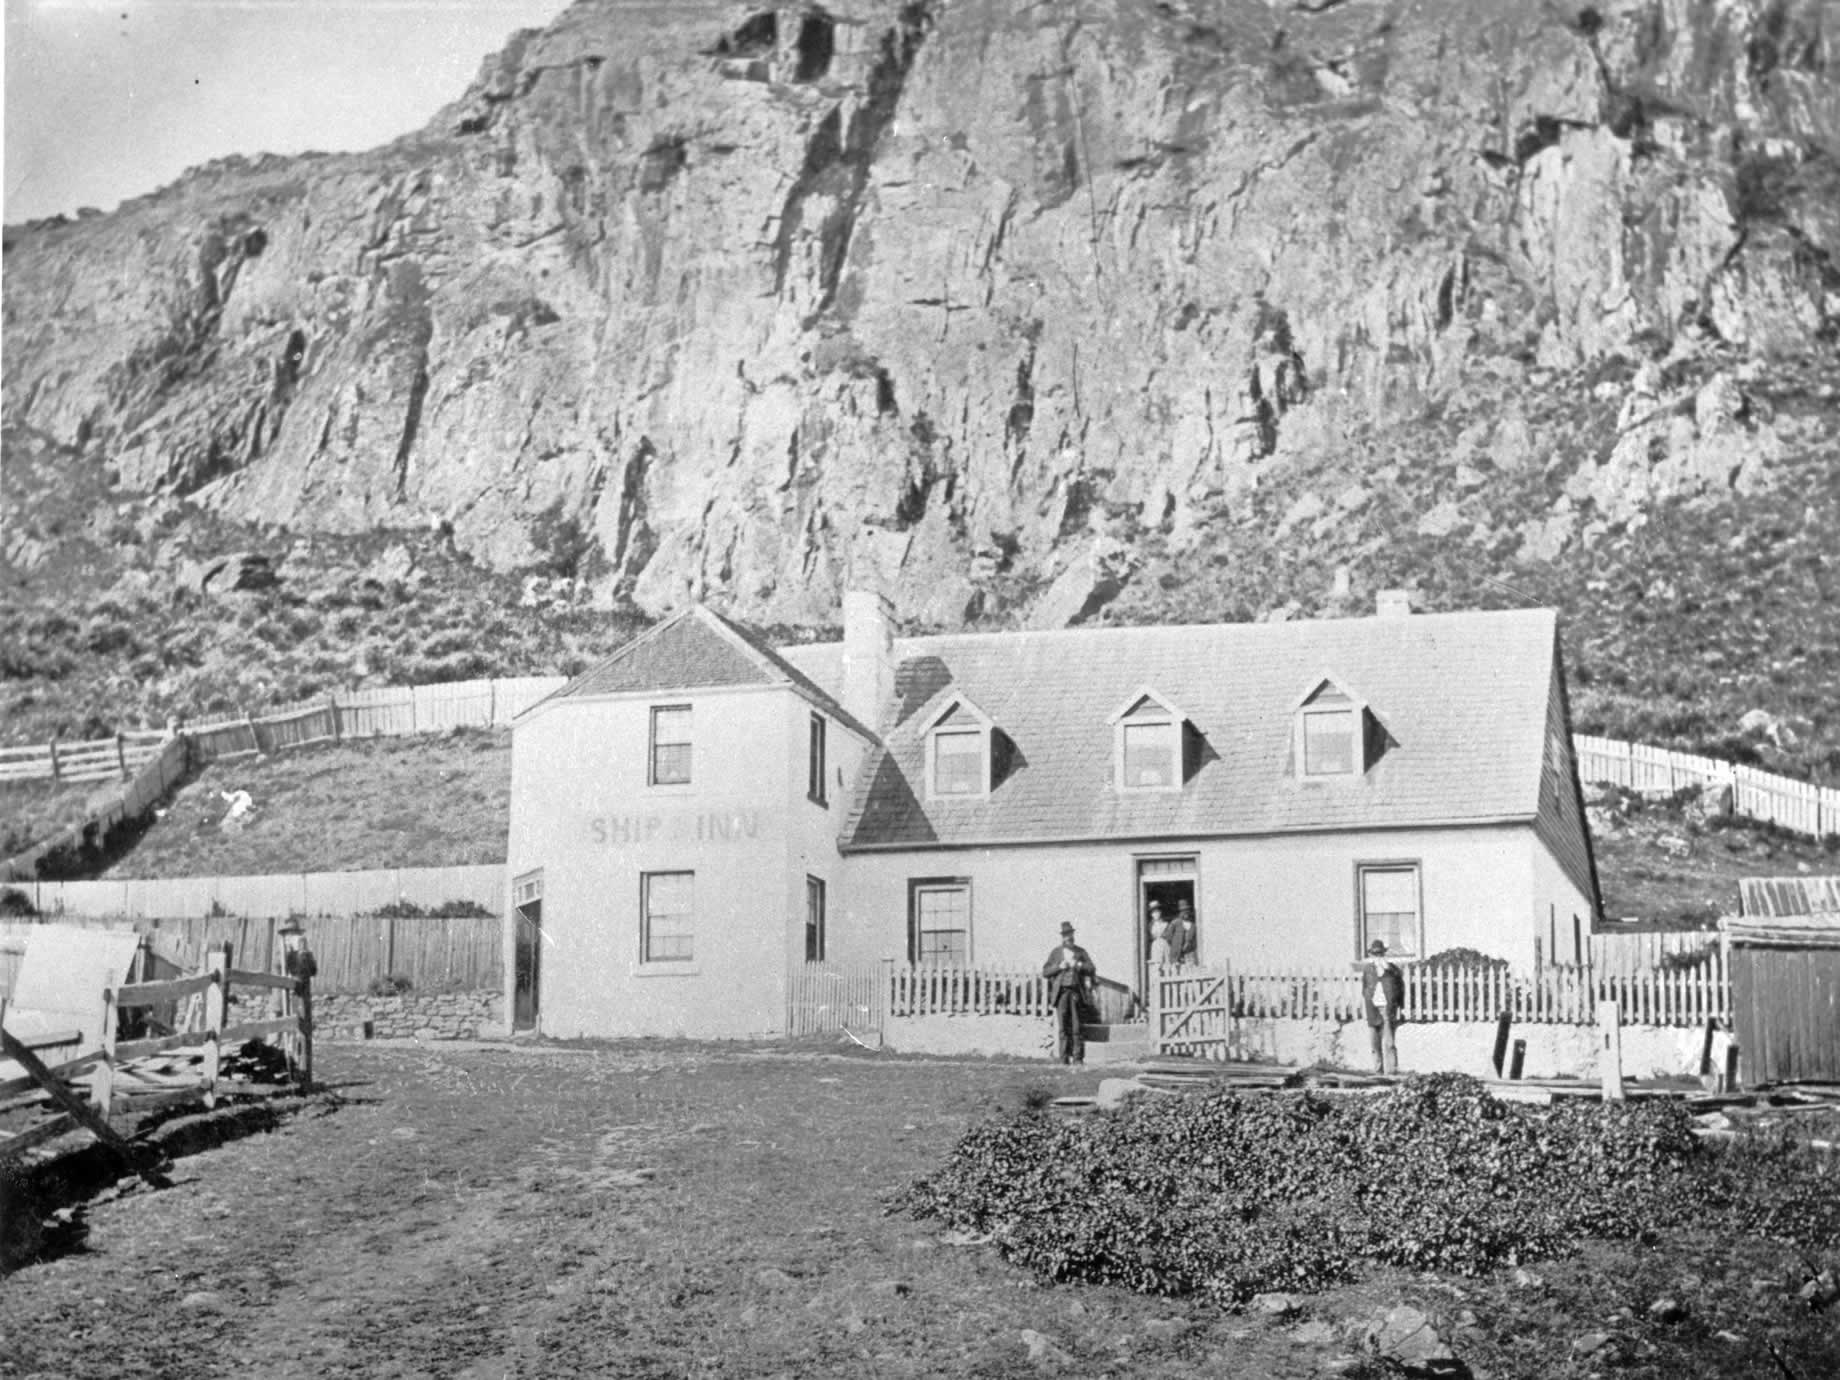 The Ship Inn, first licenced in 1849, which was sold in 1903 and renamed Bay View Hotel